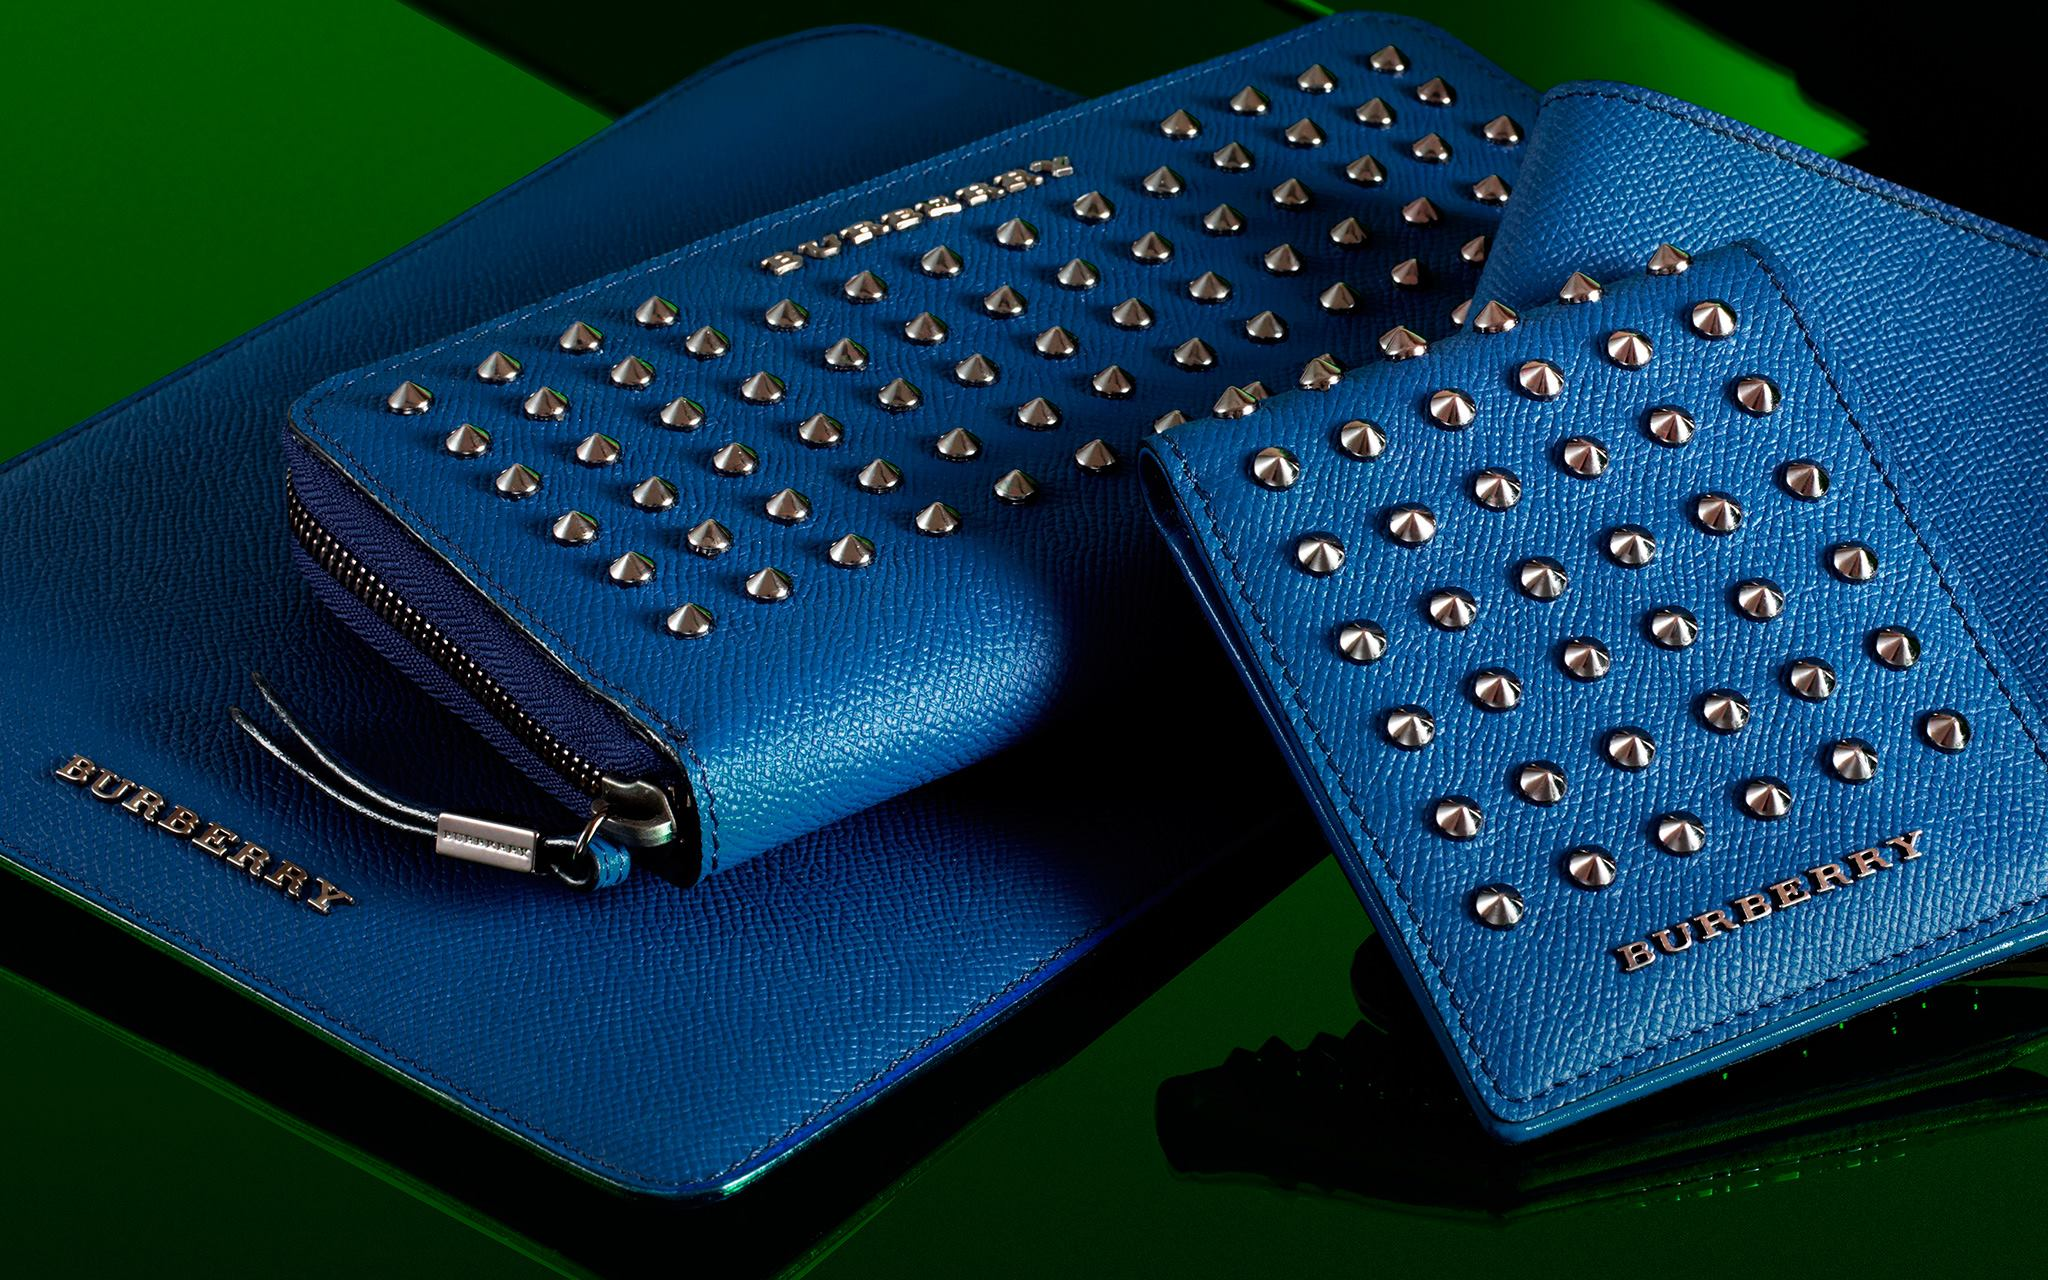 Burberry Accessories Fall Winter 2013 (6)